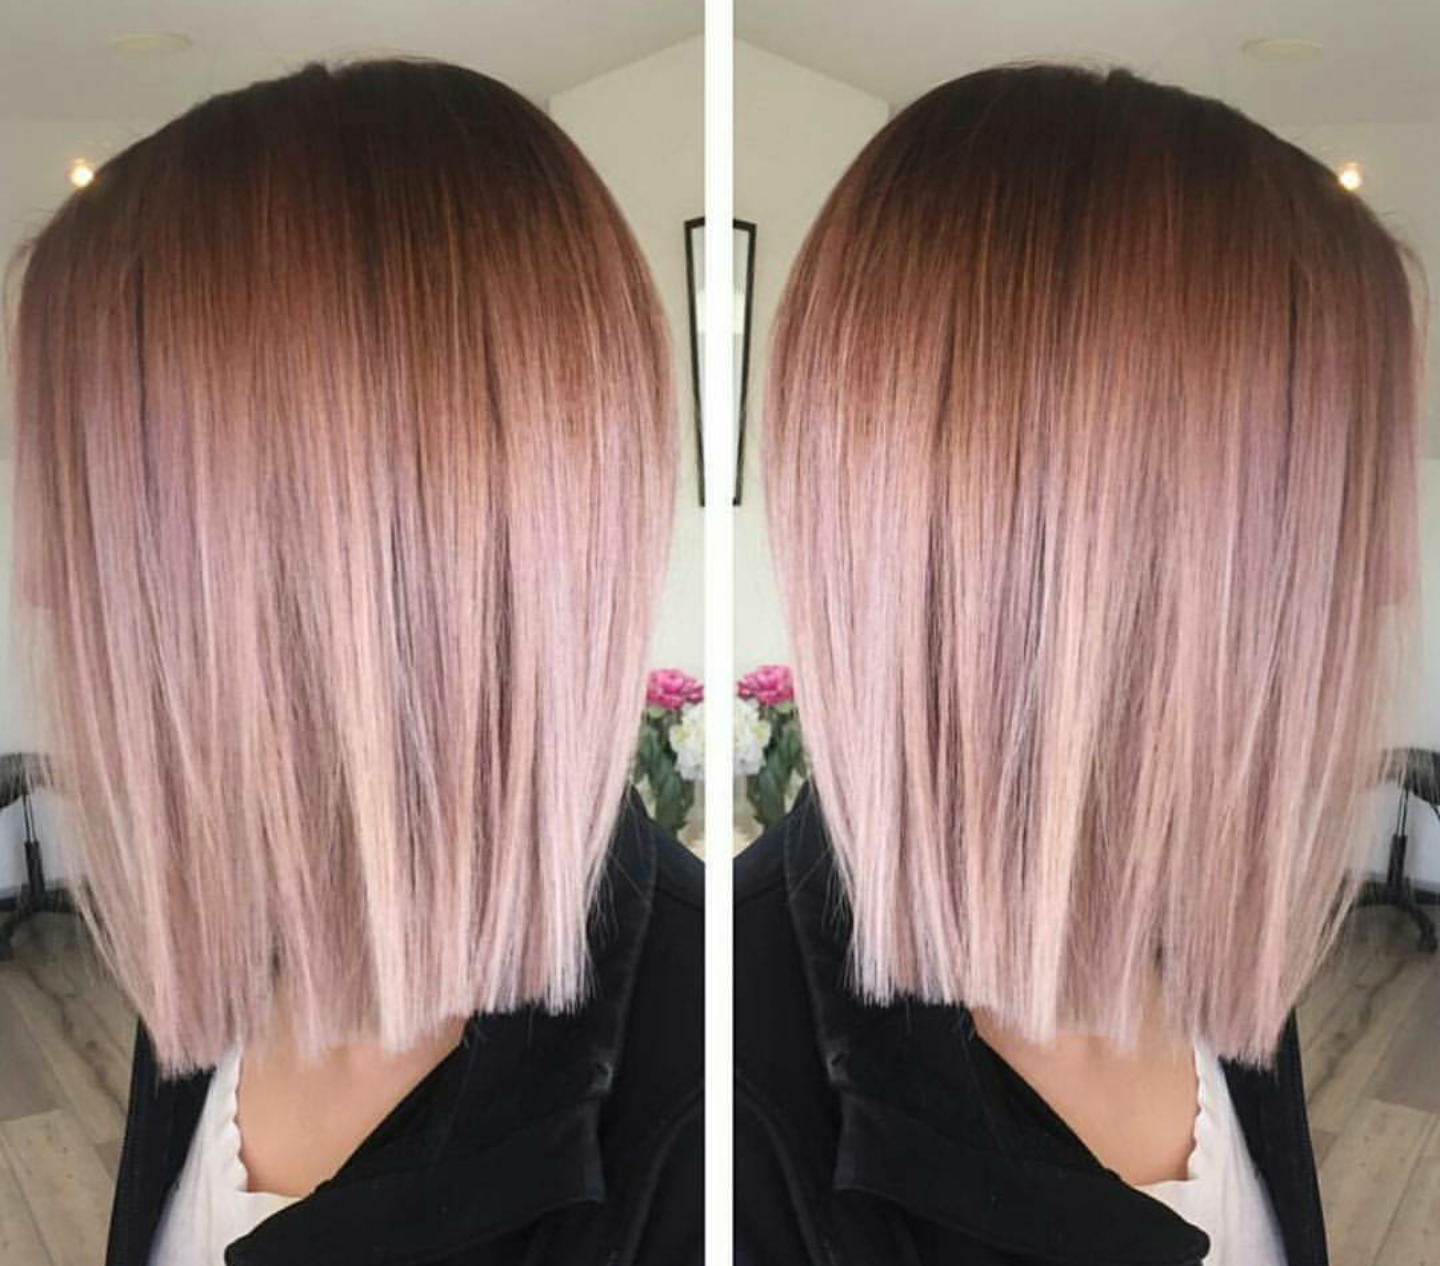 Rose Gold Ombre HOW-TO, Pricing & Formulas! #rosegoldhair #ombre #behindthechair #colormelt